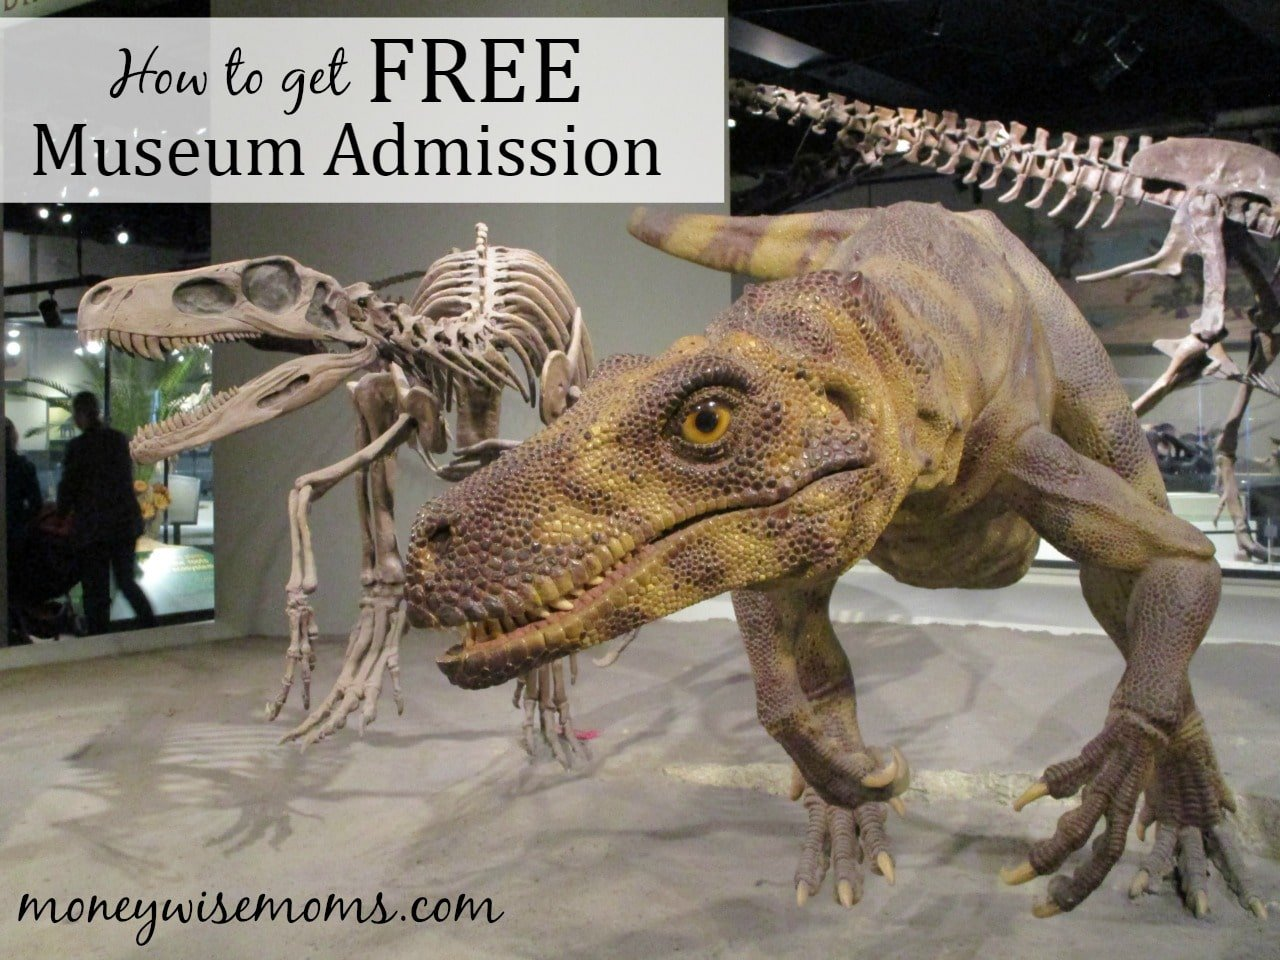 How to get free admission to museums